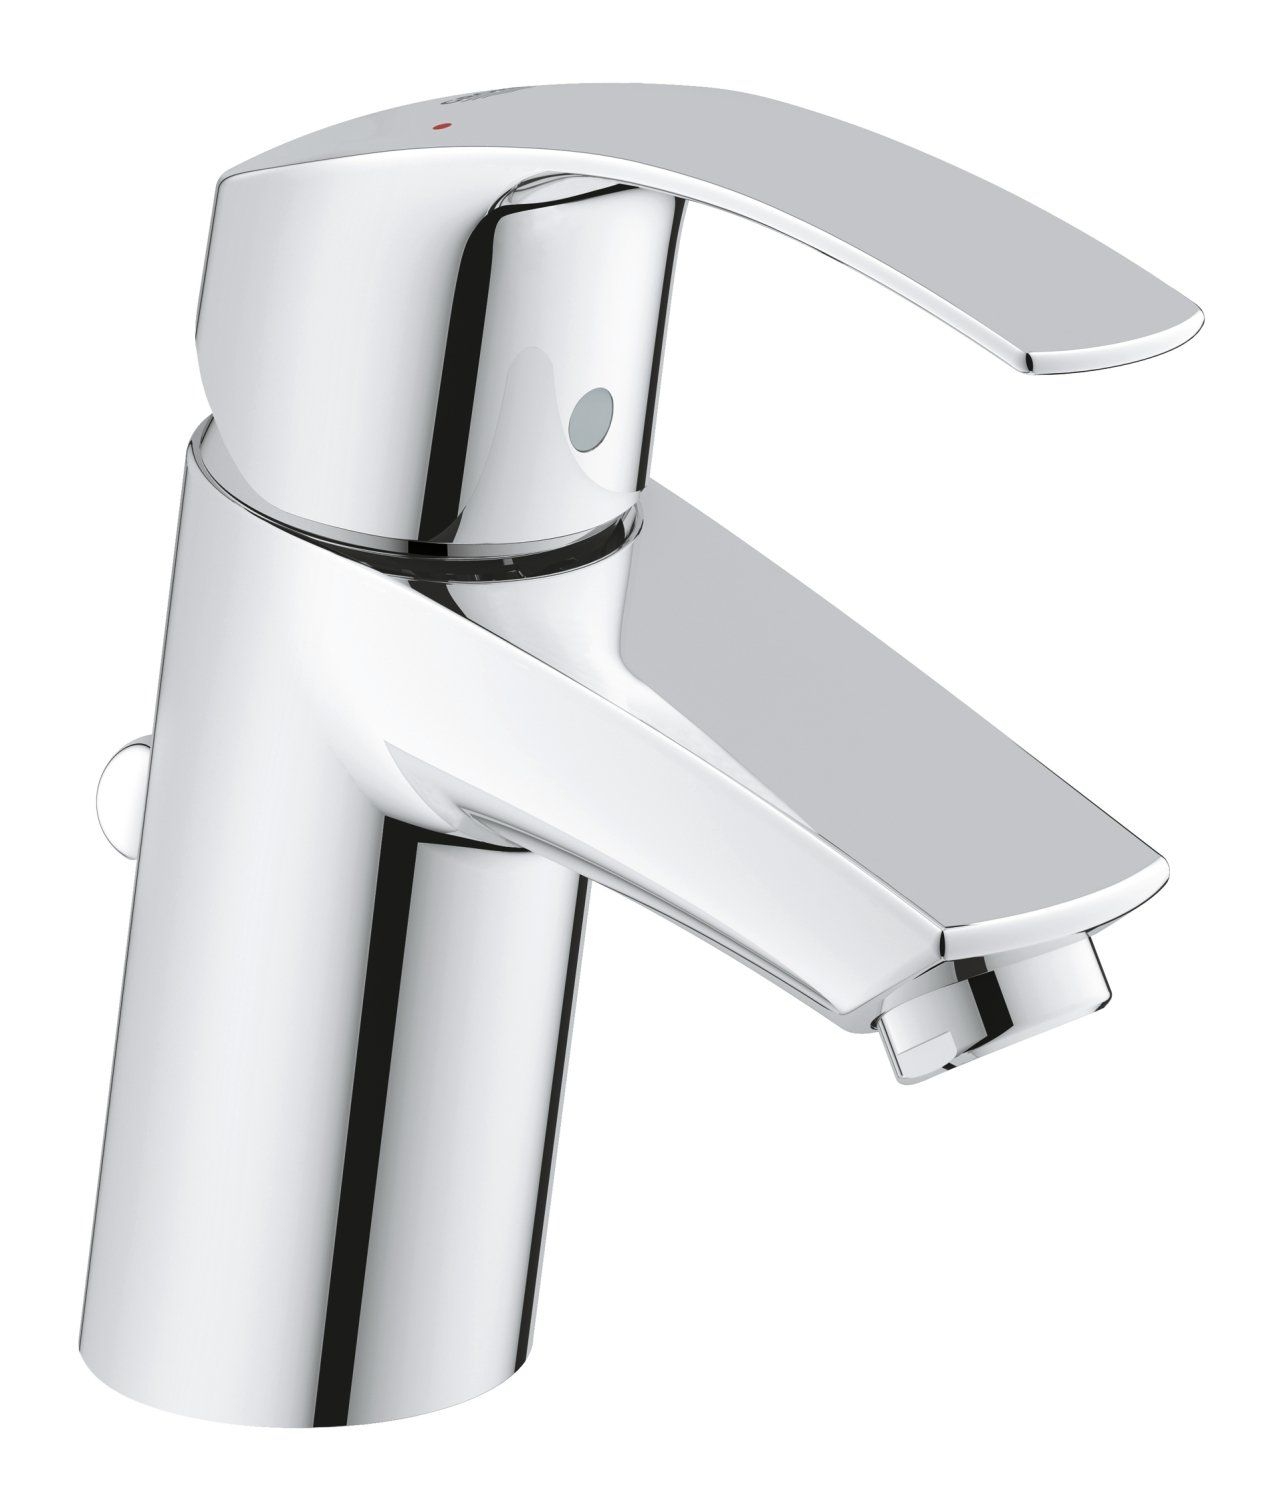 stem handle tap monitor pot bridge taps kitchen shower valve faucets repair bathtub rv tips cool decorating bathroom delta replace adorable get end size sink bronze moen brass tub and grohe full large of replacement high faucet parts filler hose cartridge